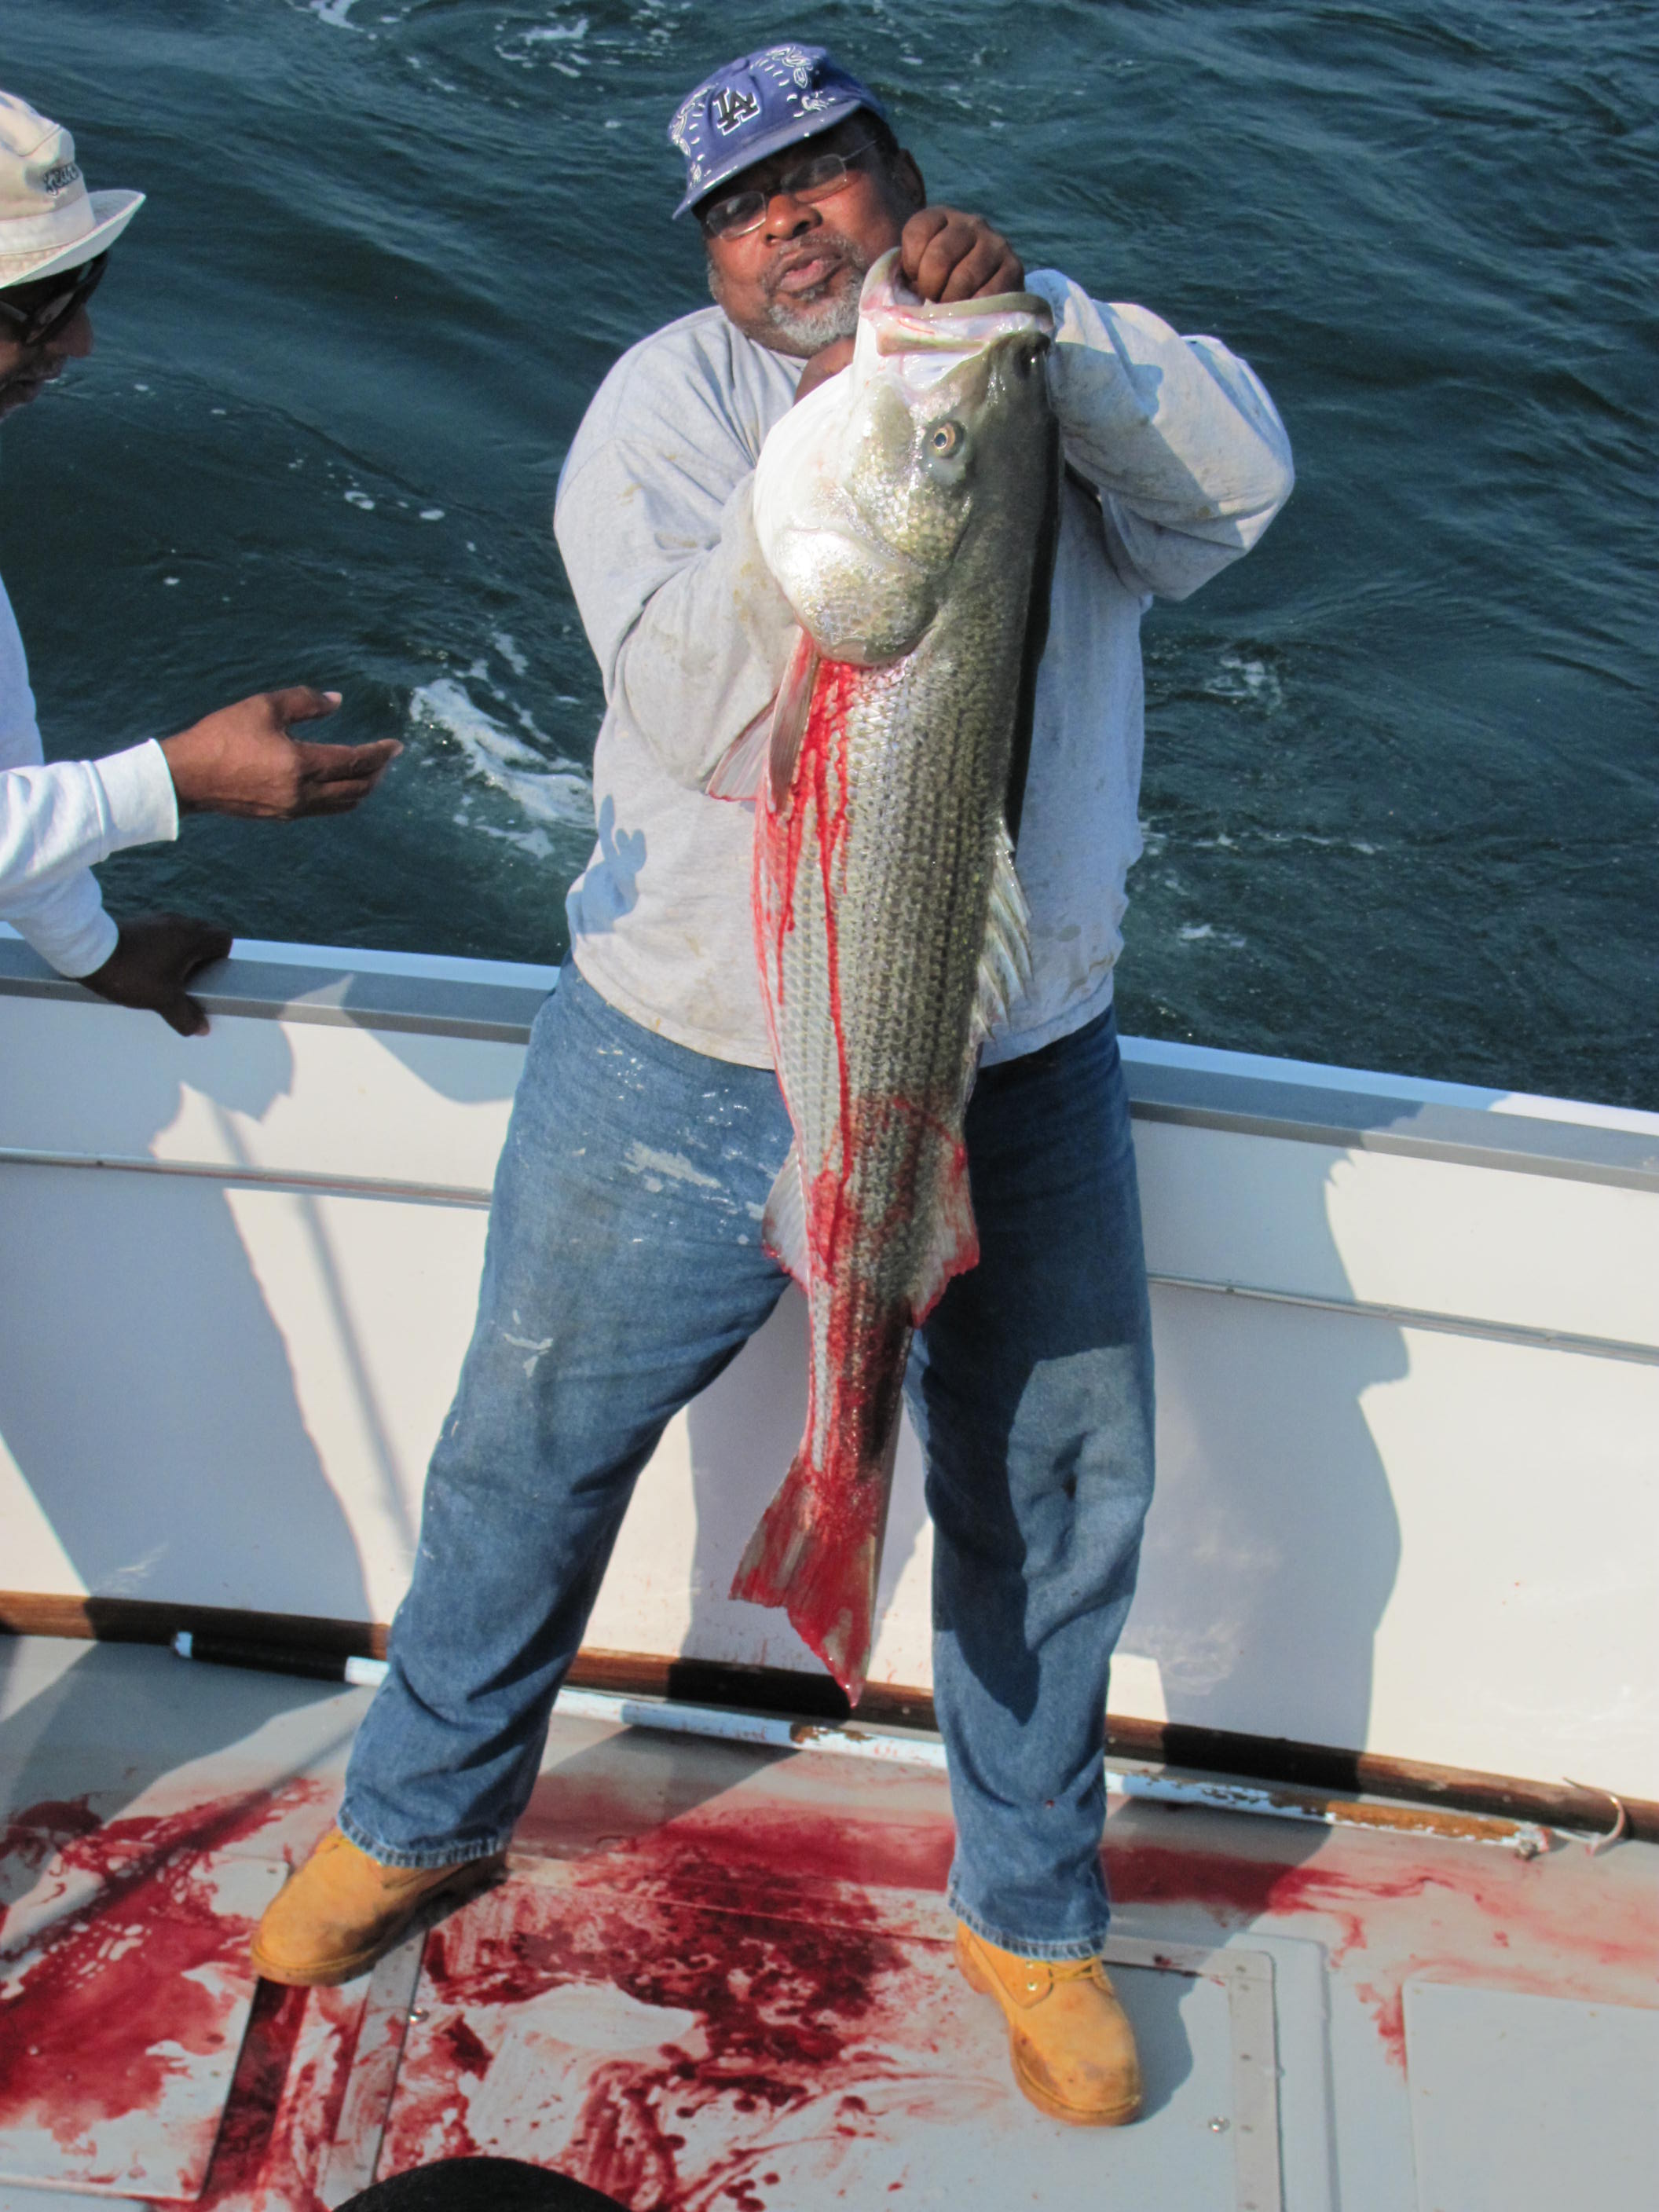 This 51 pound bass was caught aboard the Misty charter fishing boat fishing our of Galilee RI